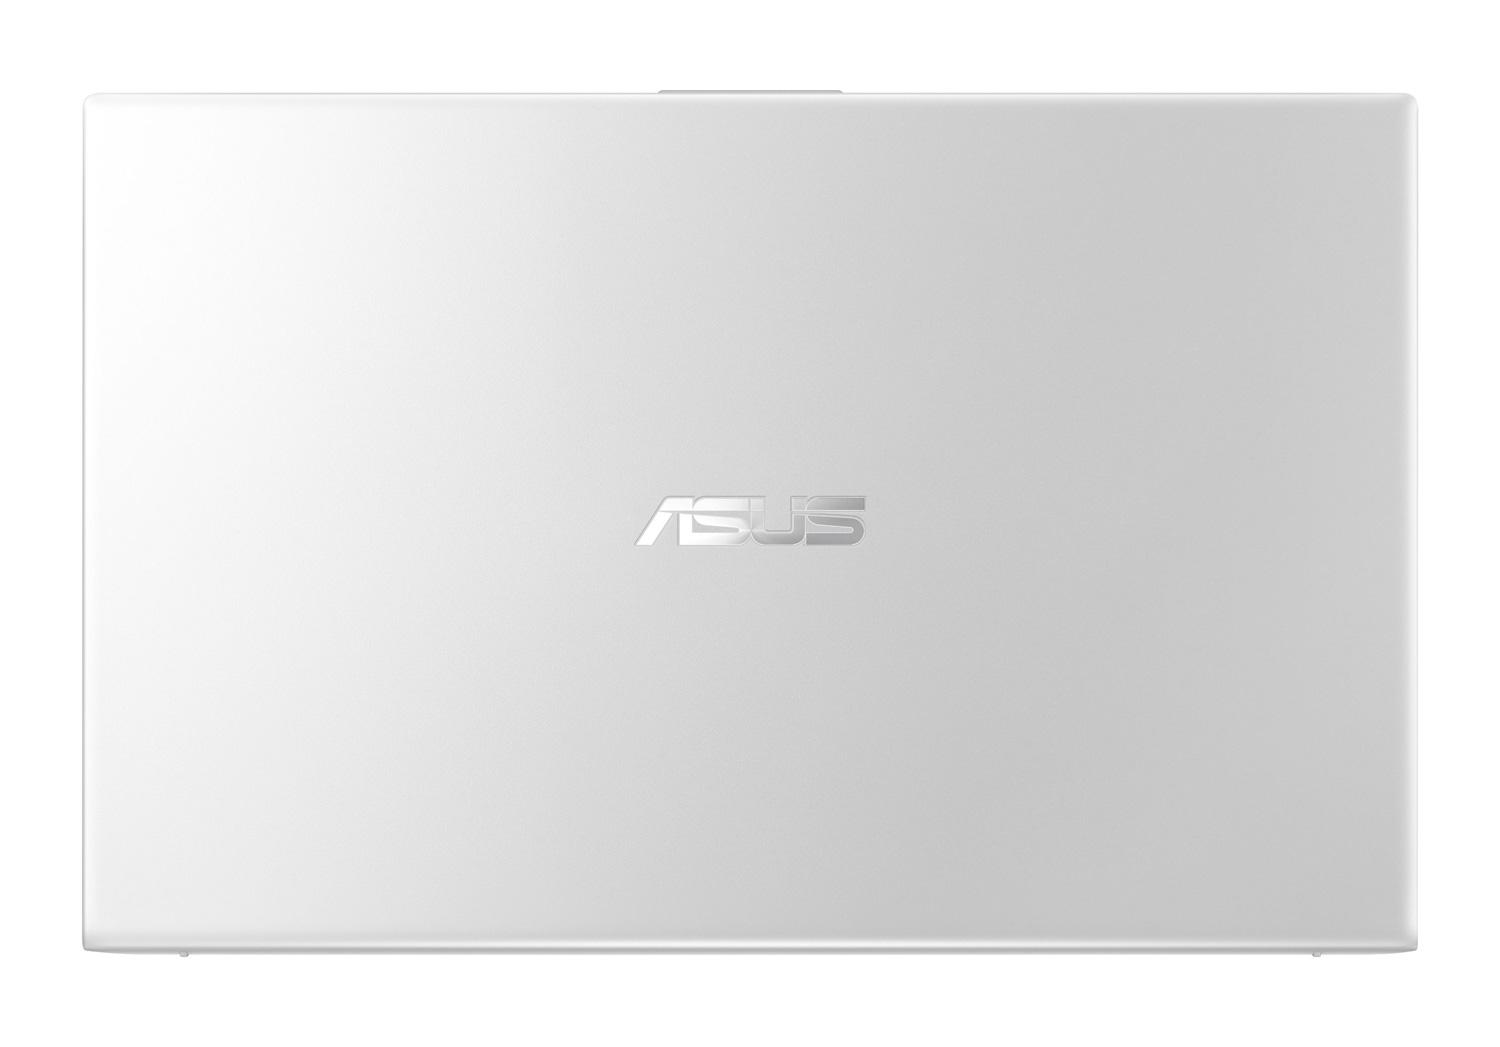 Ordinateur portable Asus VivoBook S512DA-EJ209T Argent - Ryzen 7 - photo 6